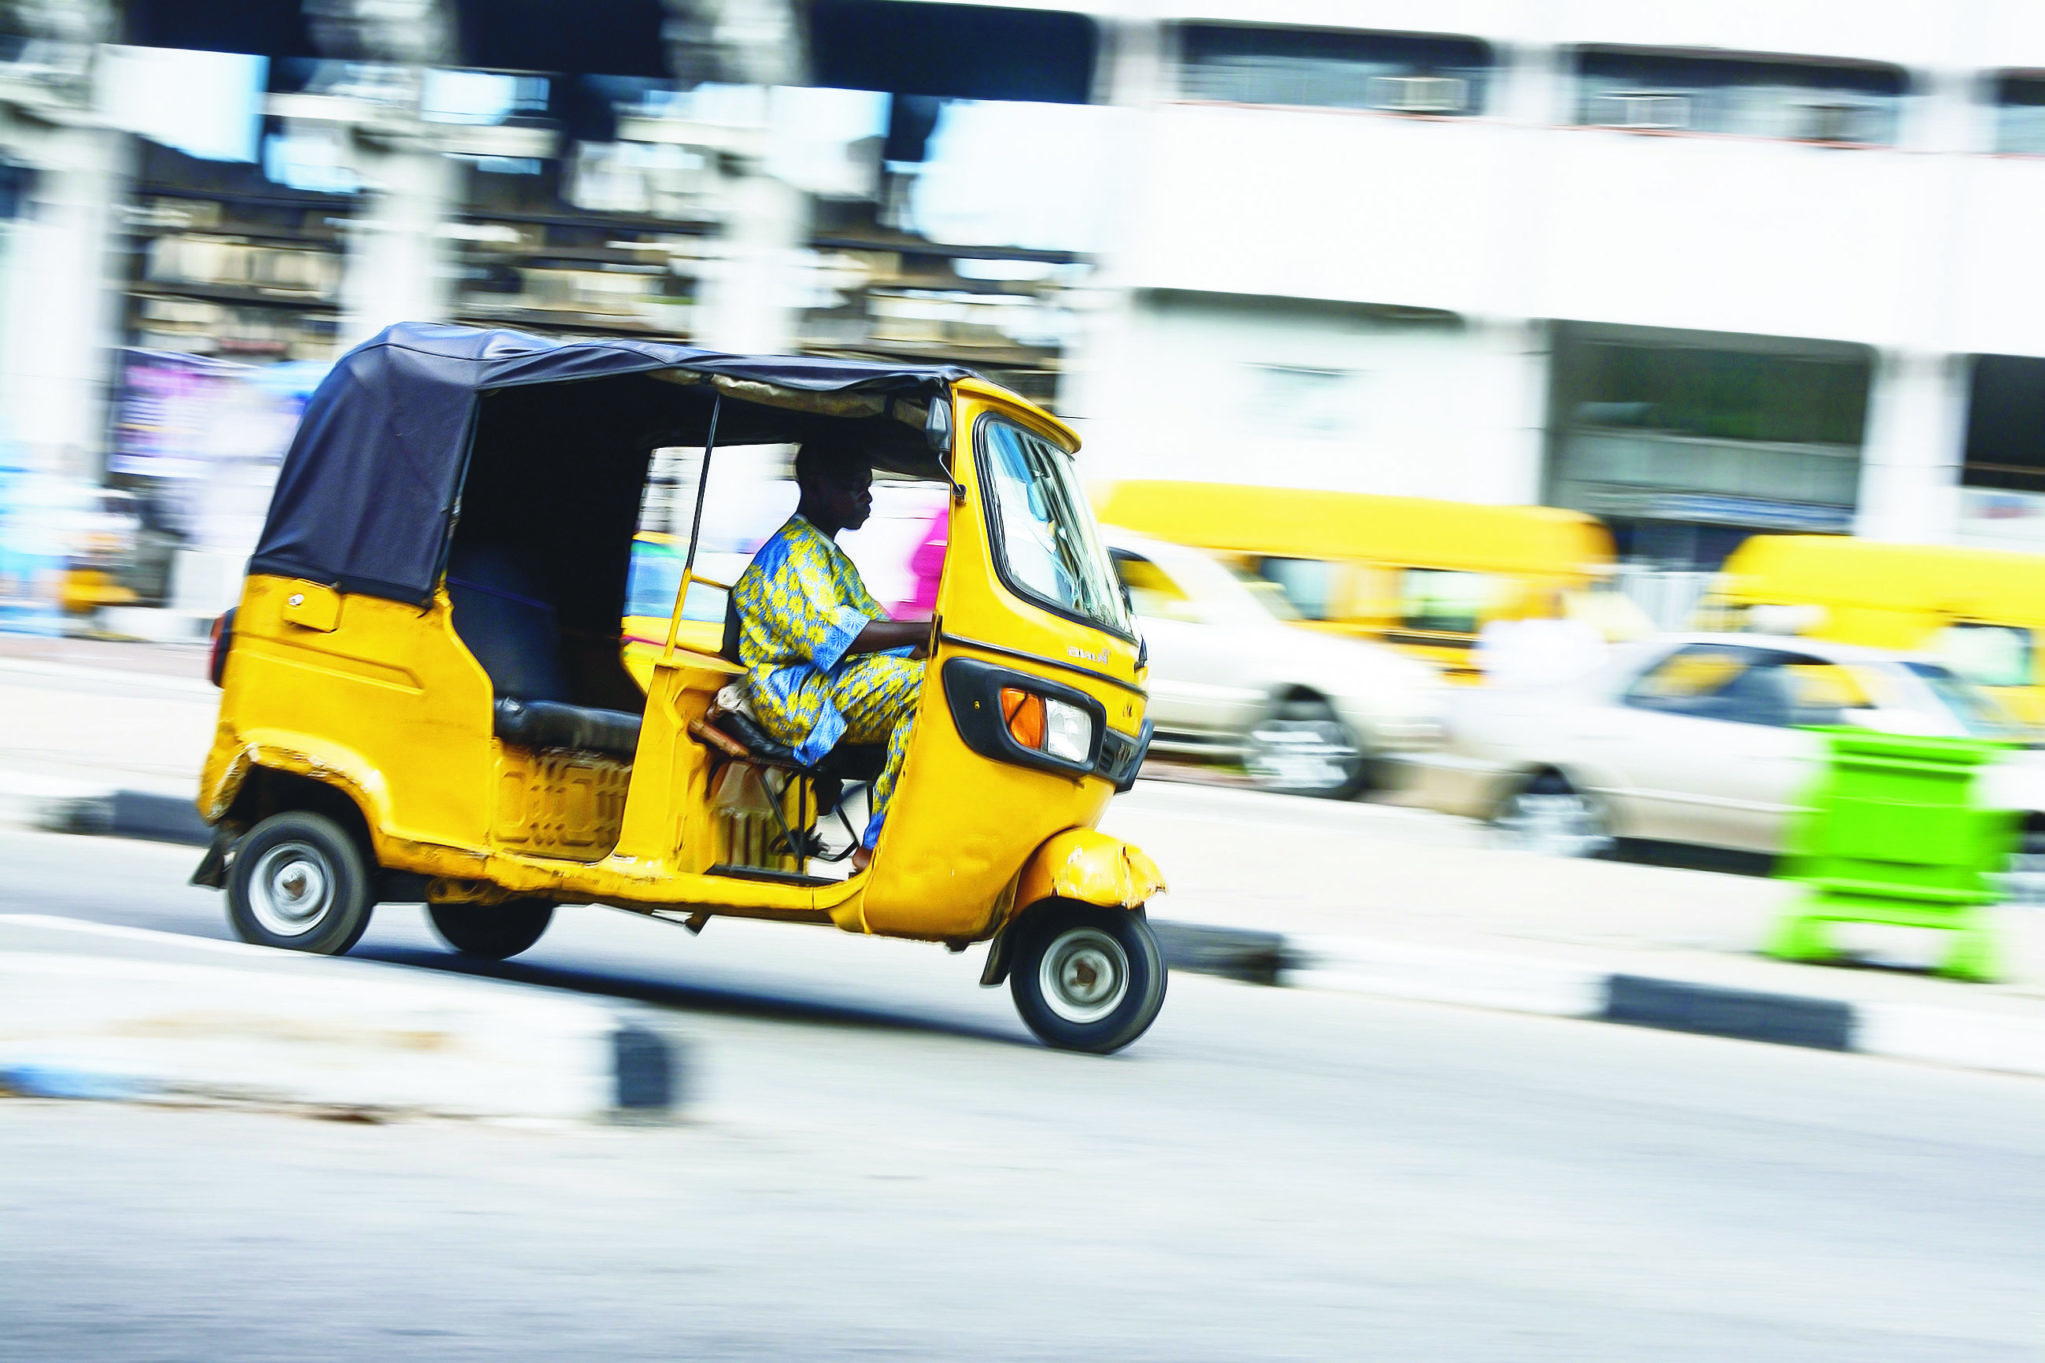 Global cities offer lessons to Lagos on dynamic optimisation of transport